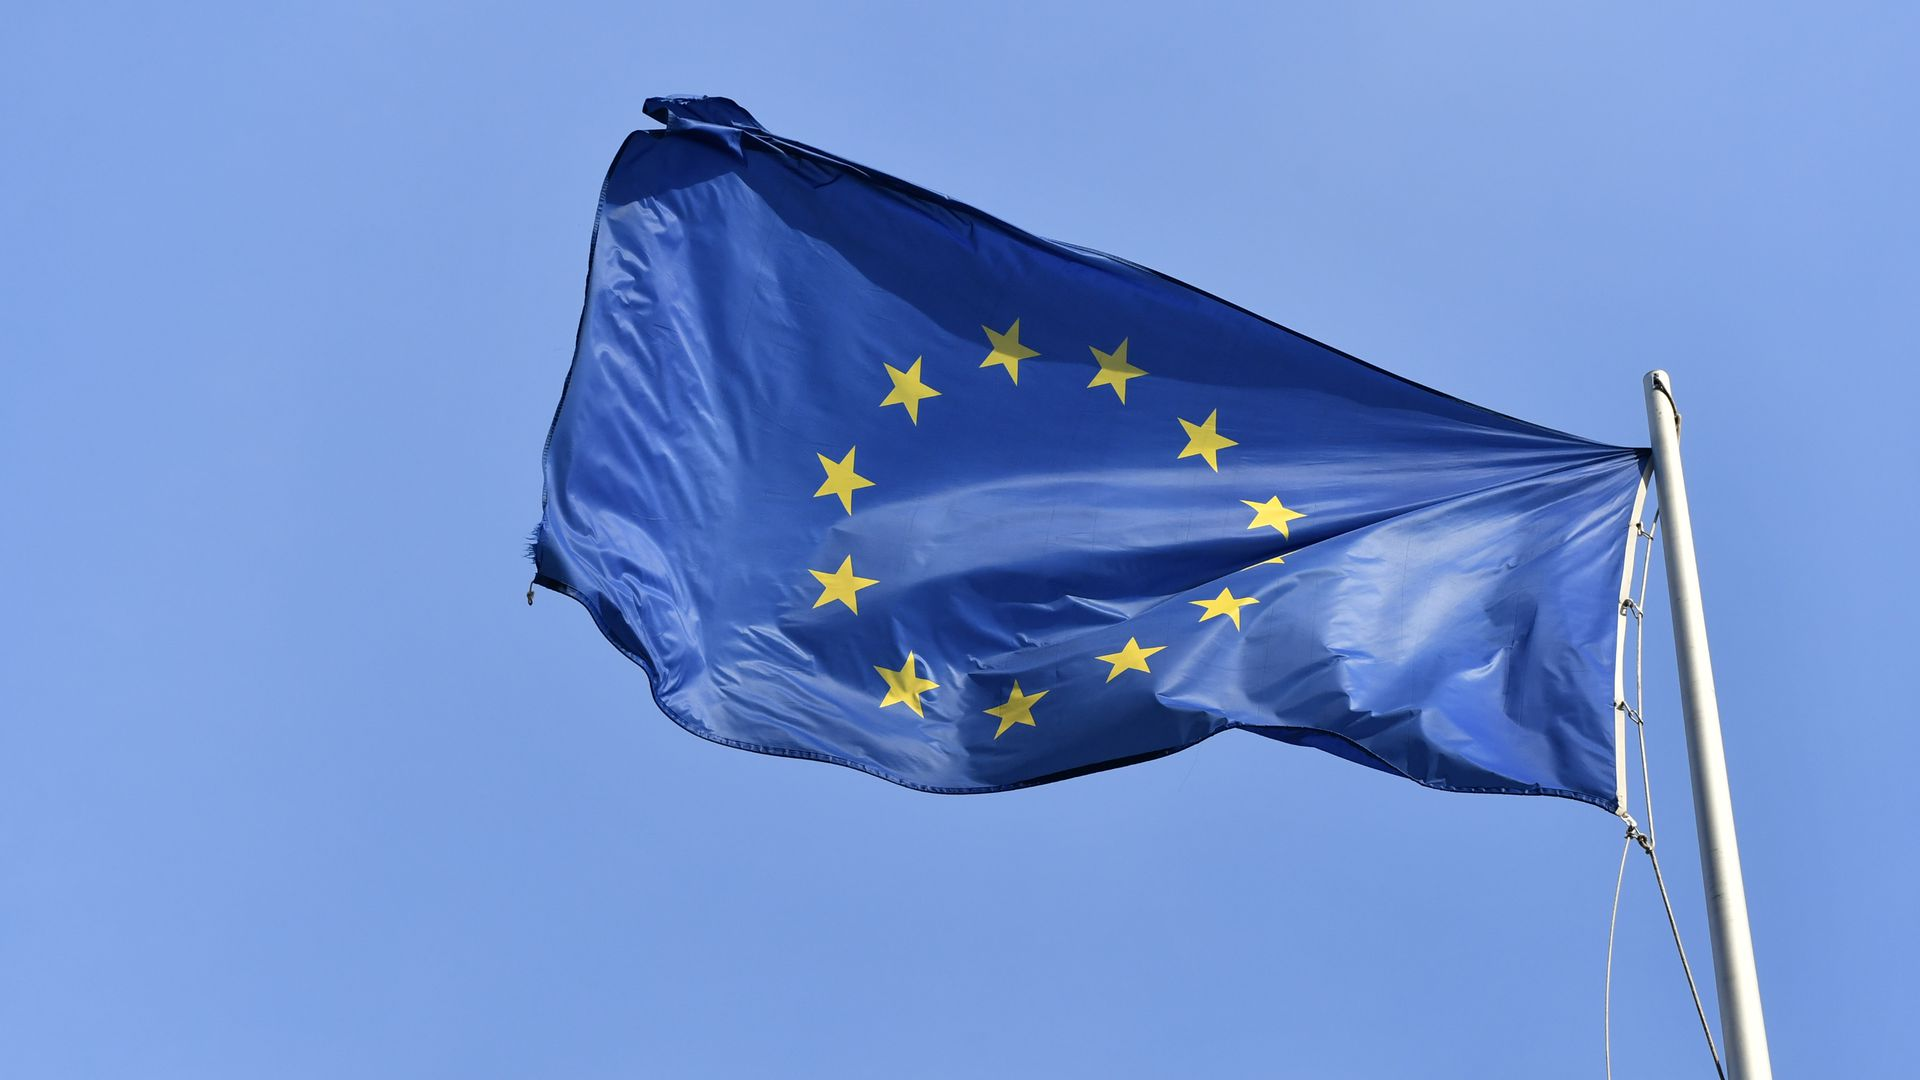 The blue and yellow flag of the European Union waves against the sky.